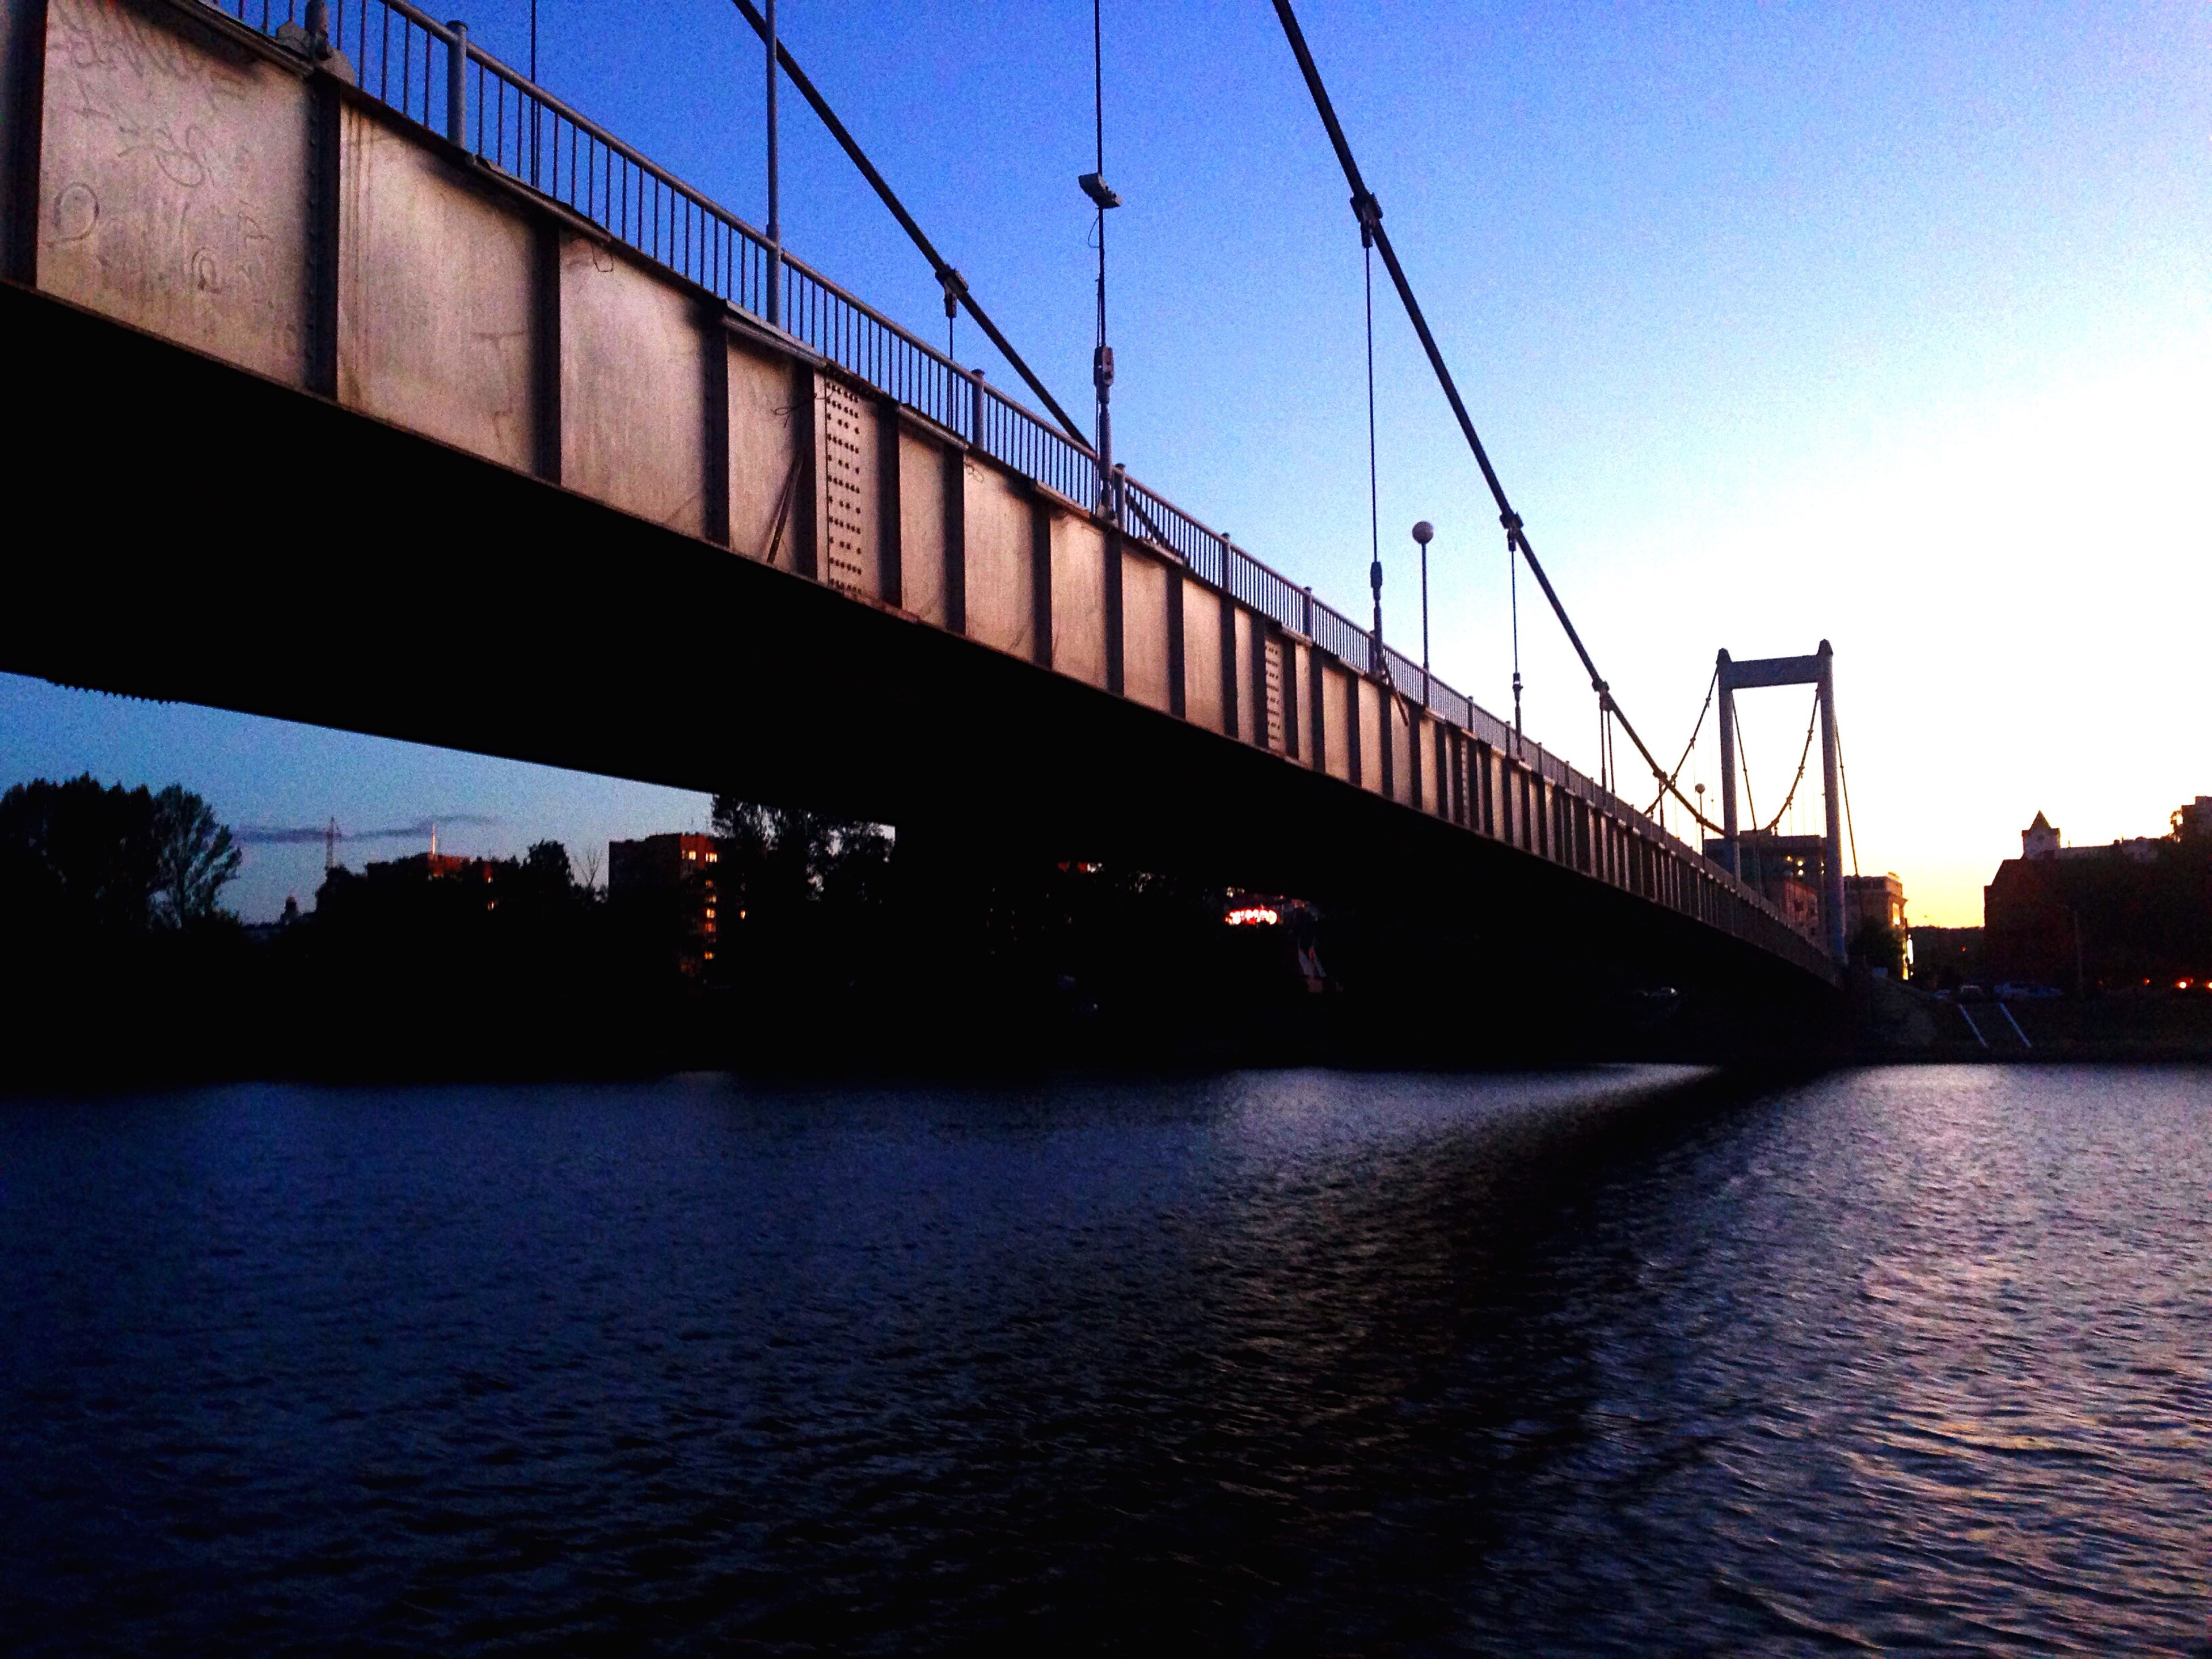 connection, architecture, built structure, bridge - man made structure, river, waterfront, water, bridge, clear sky, transportation, engineering, building exterior, sky, suspension bridge, low angle view, cable, reflection, city, rippled, silhouette